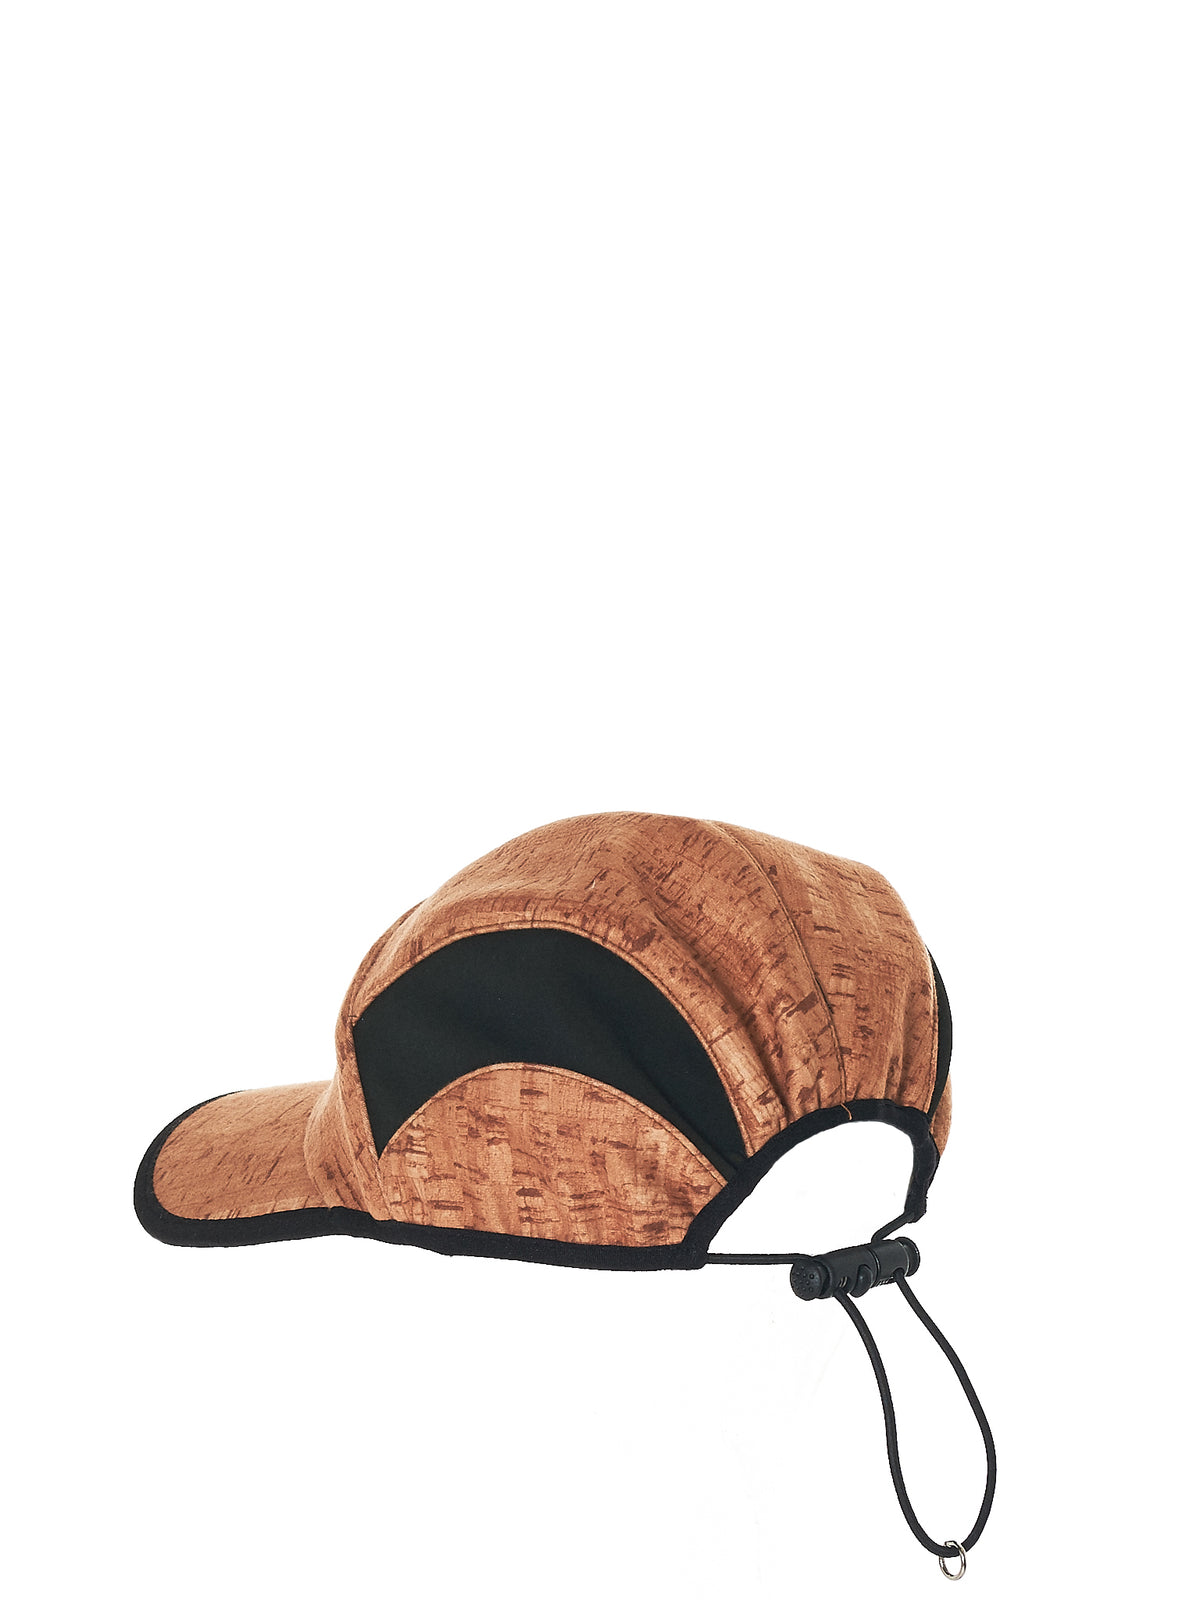 Paneled Cork Cap (CWCP-08-RV-CAP-CORK)